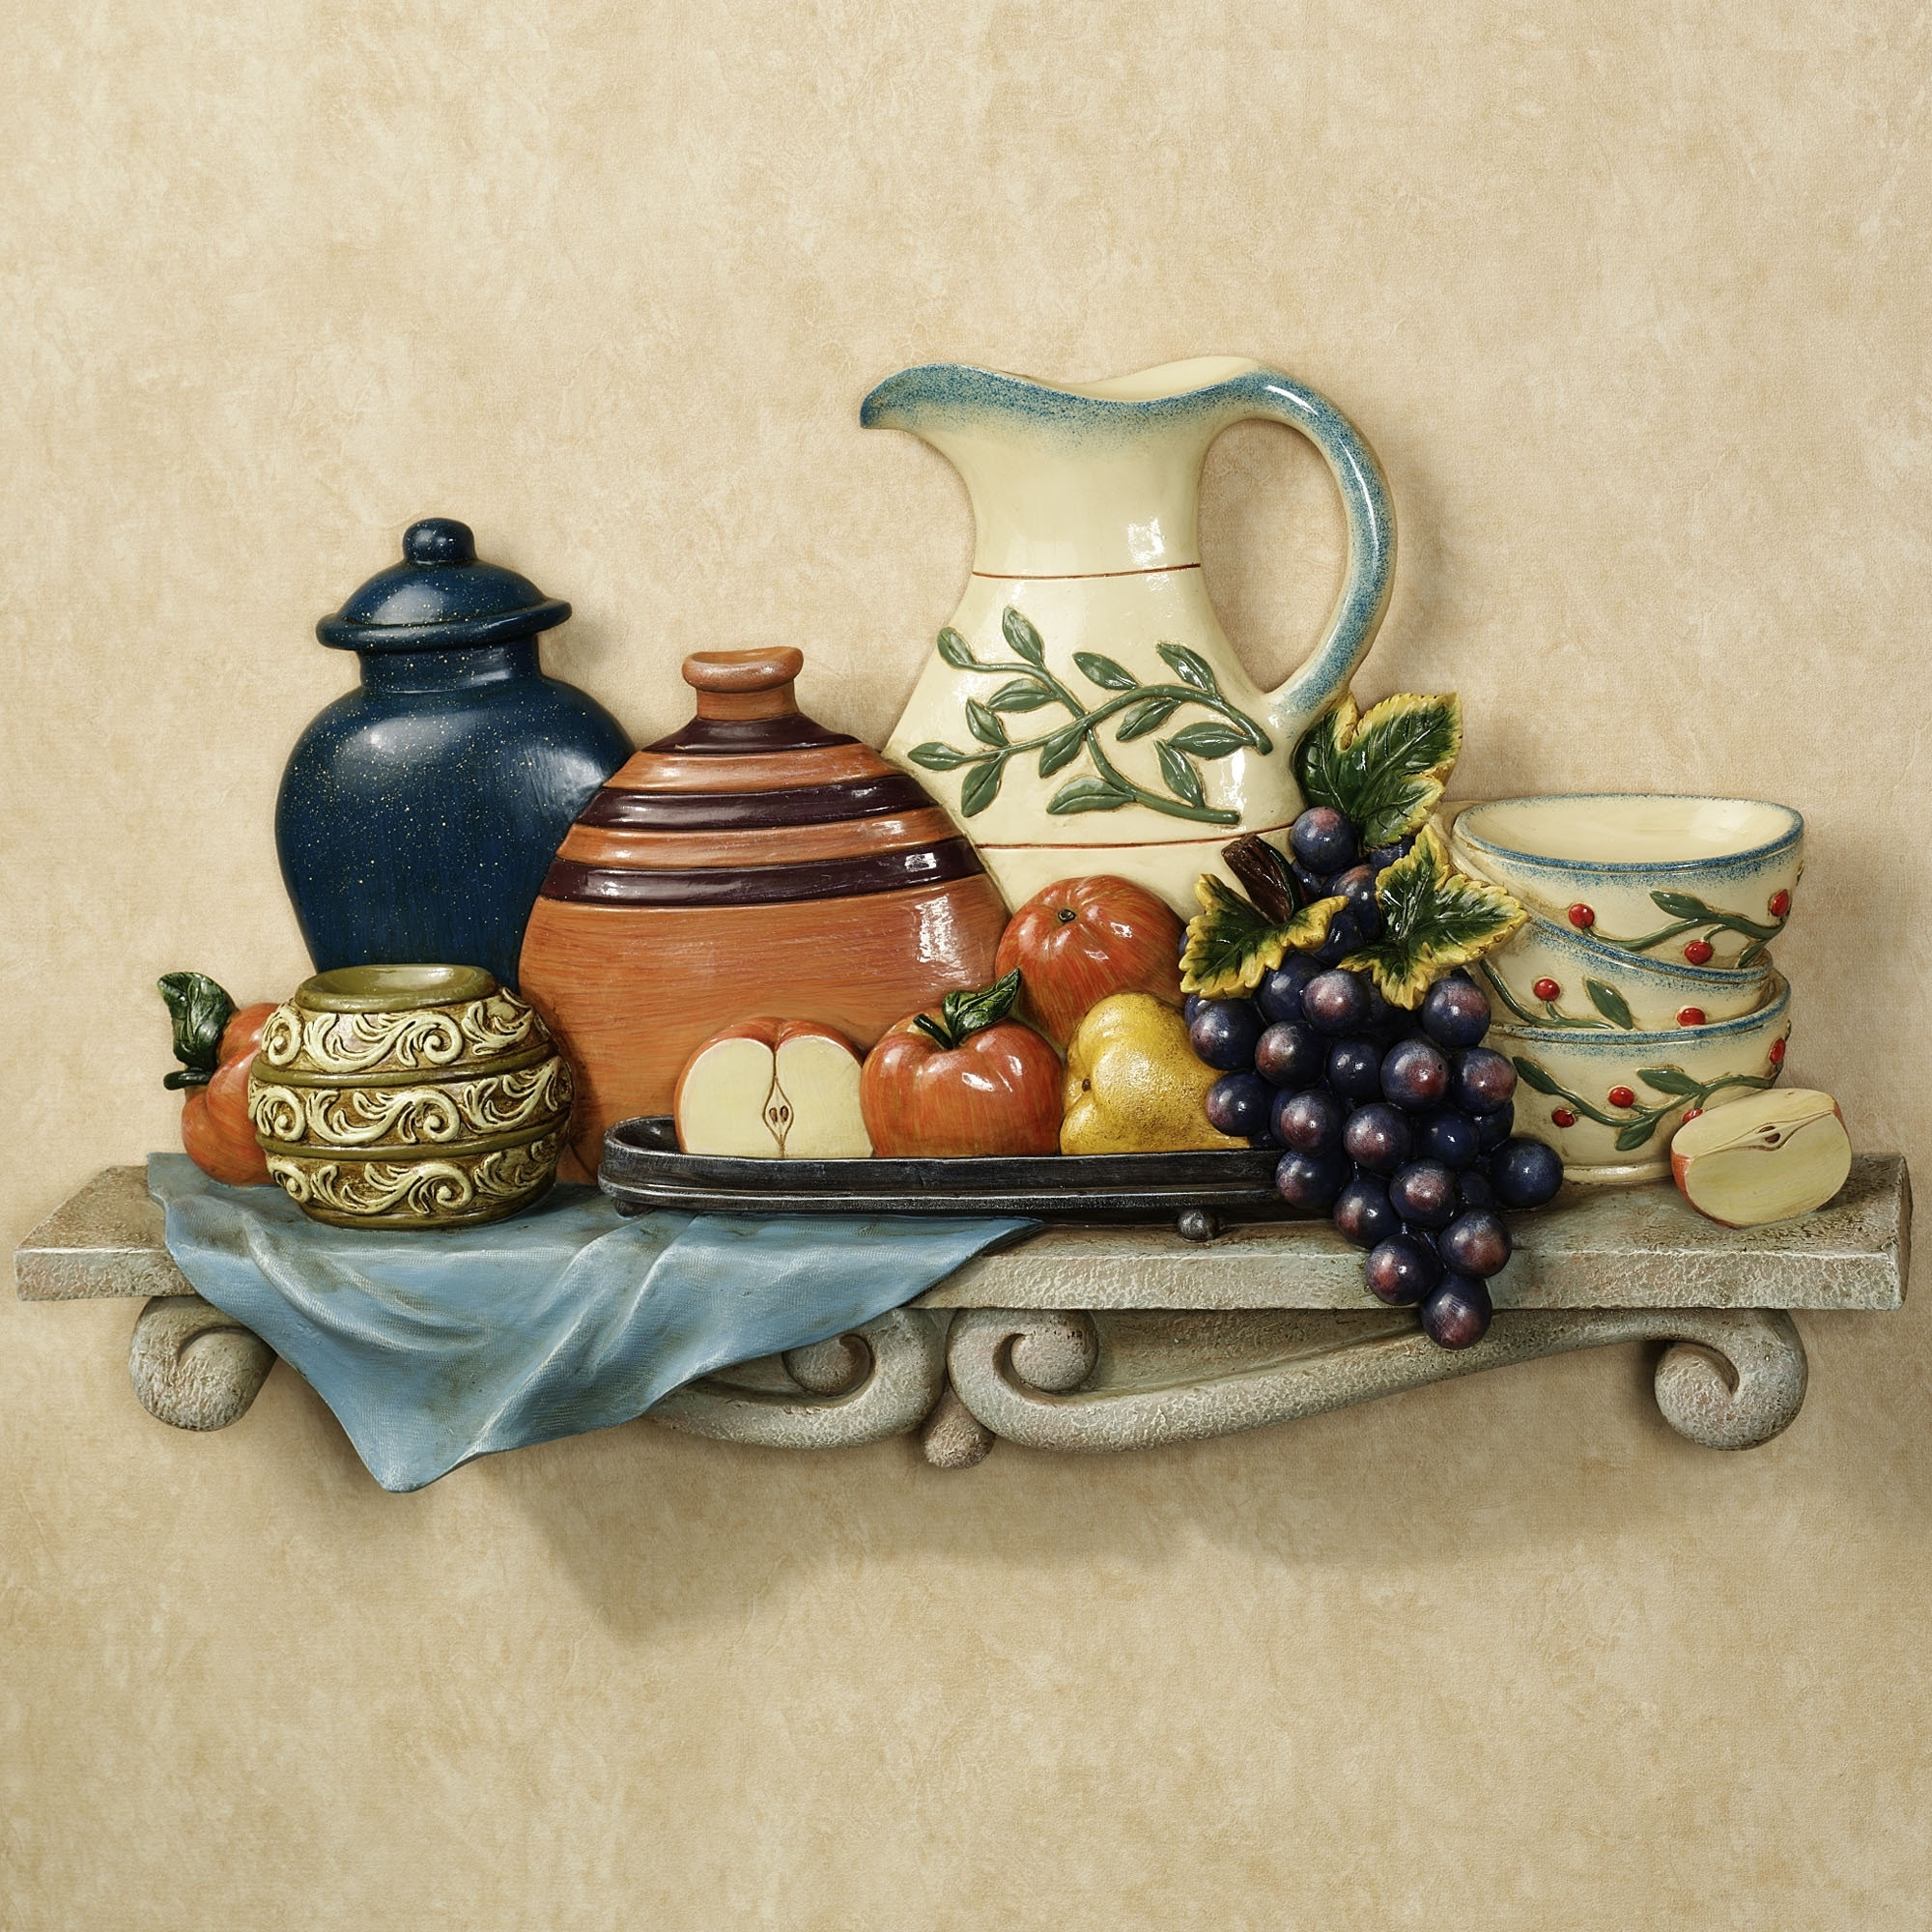 Fashionable Kitchen Style: Tuscan Kitchen Wall Decor For Welcoming Ambience Within Italian Wall Art For Kitchen (View 7 of 15)